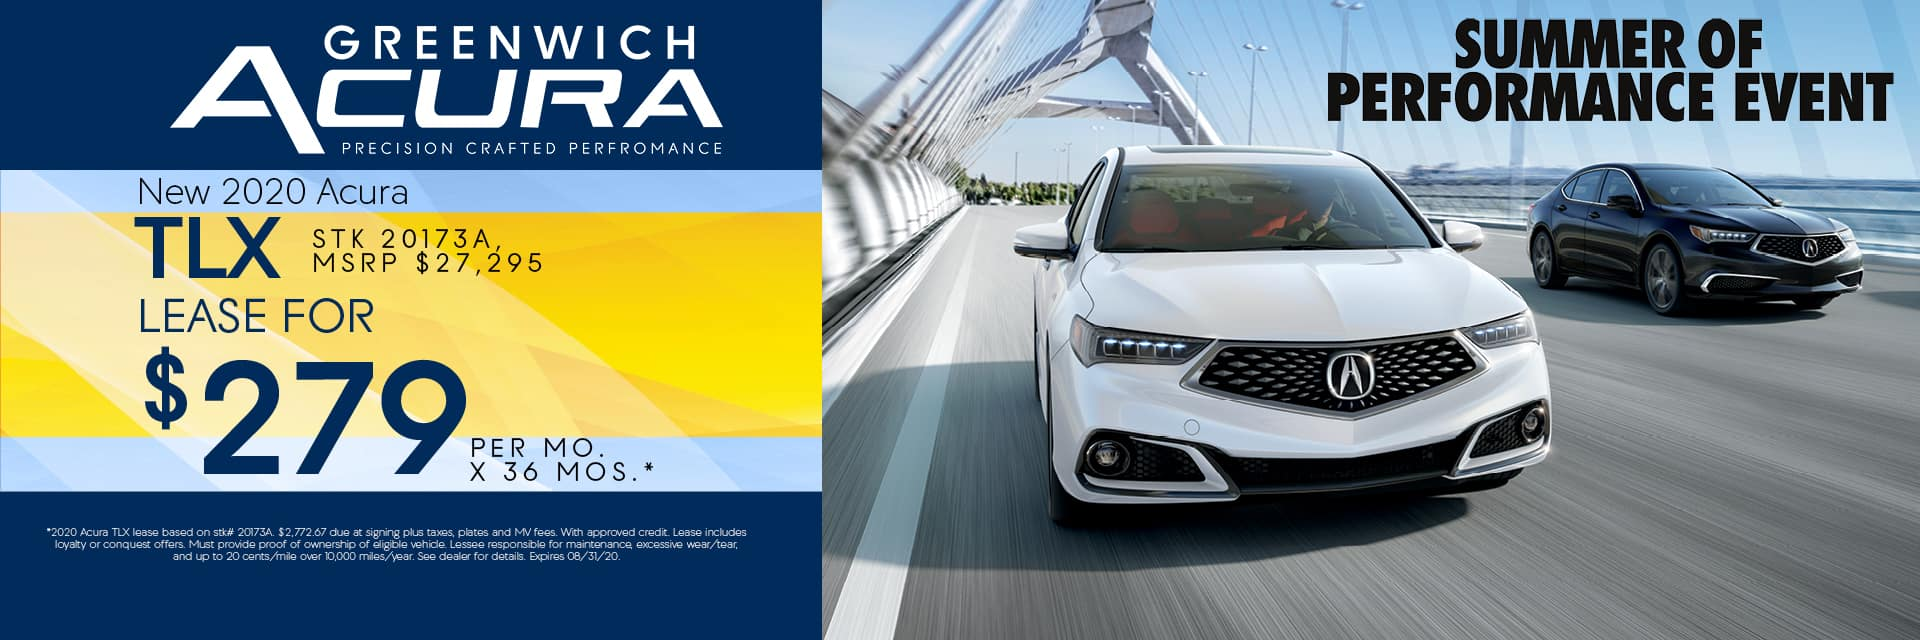 New 2020 Acura TLX Lease for $279 for 36mos. | Greenwich, CT